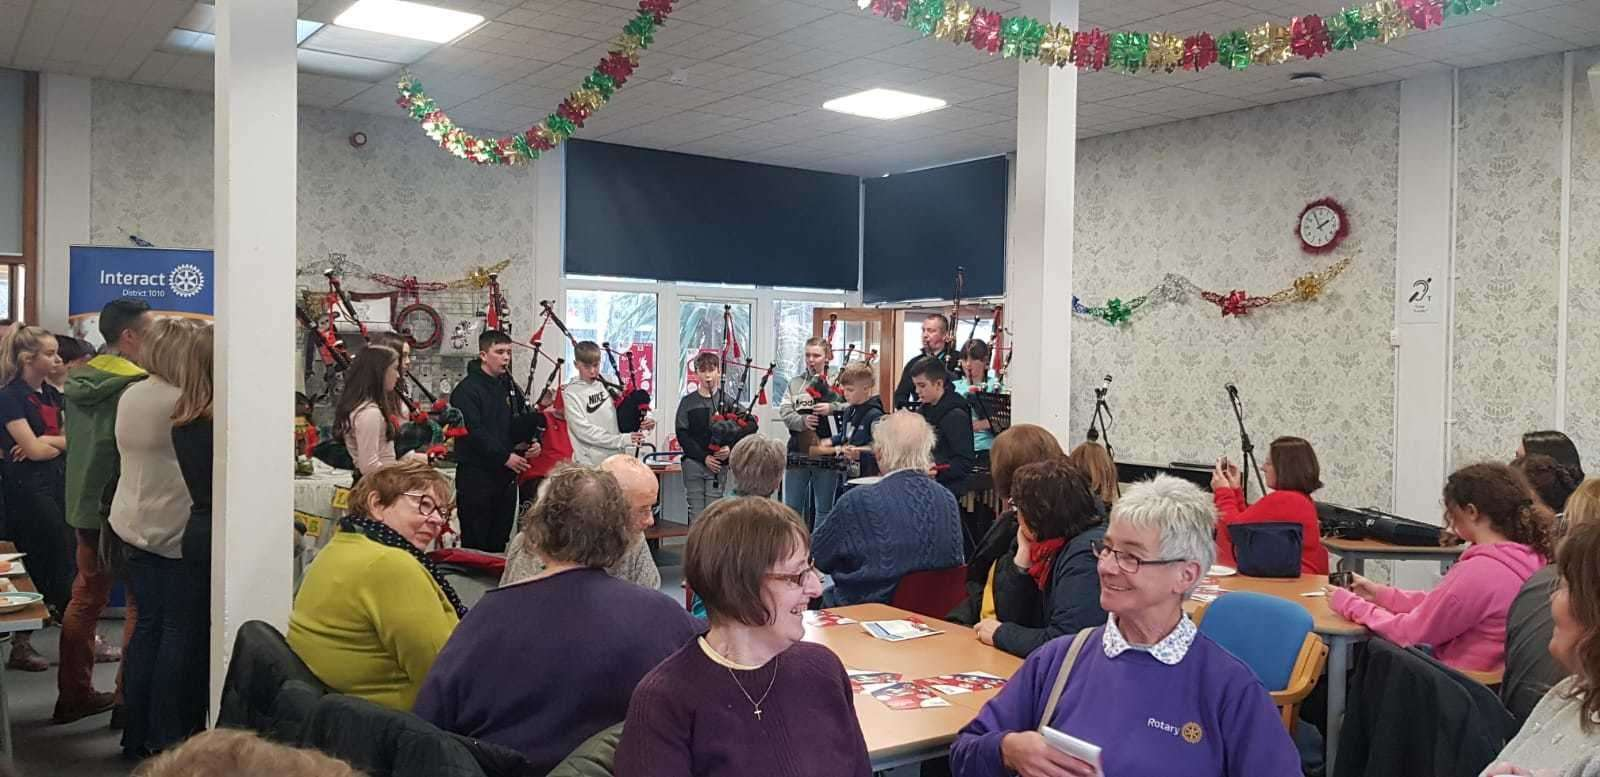 Around 100 people visited the community centre for the lunch.